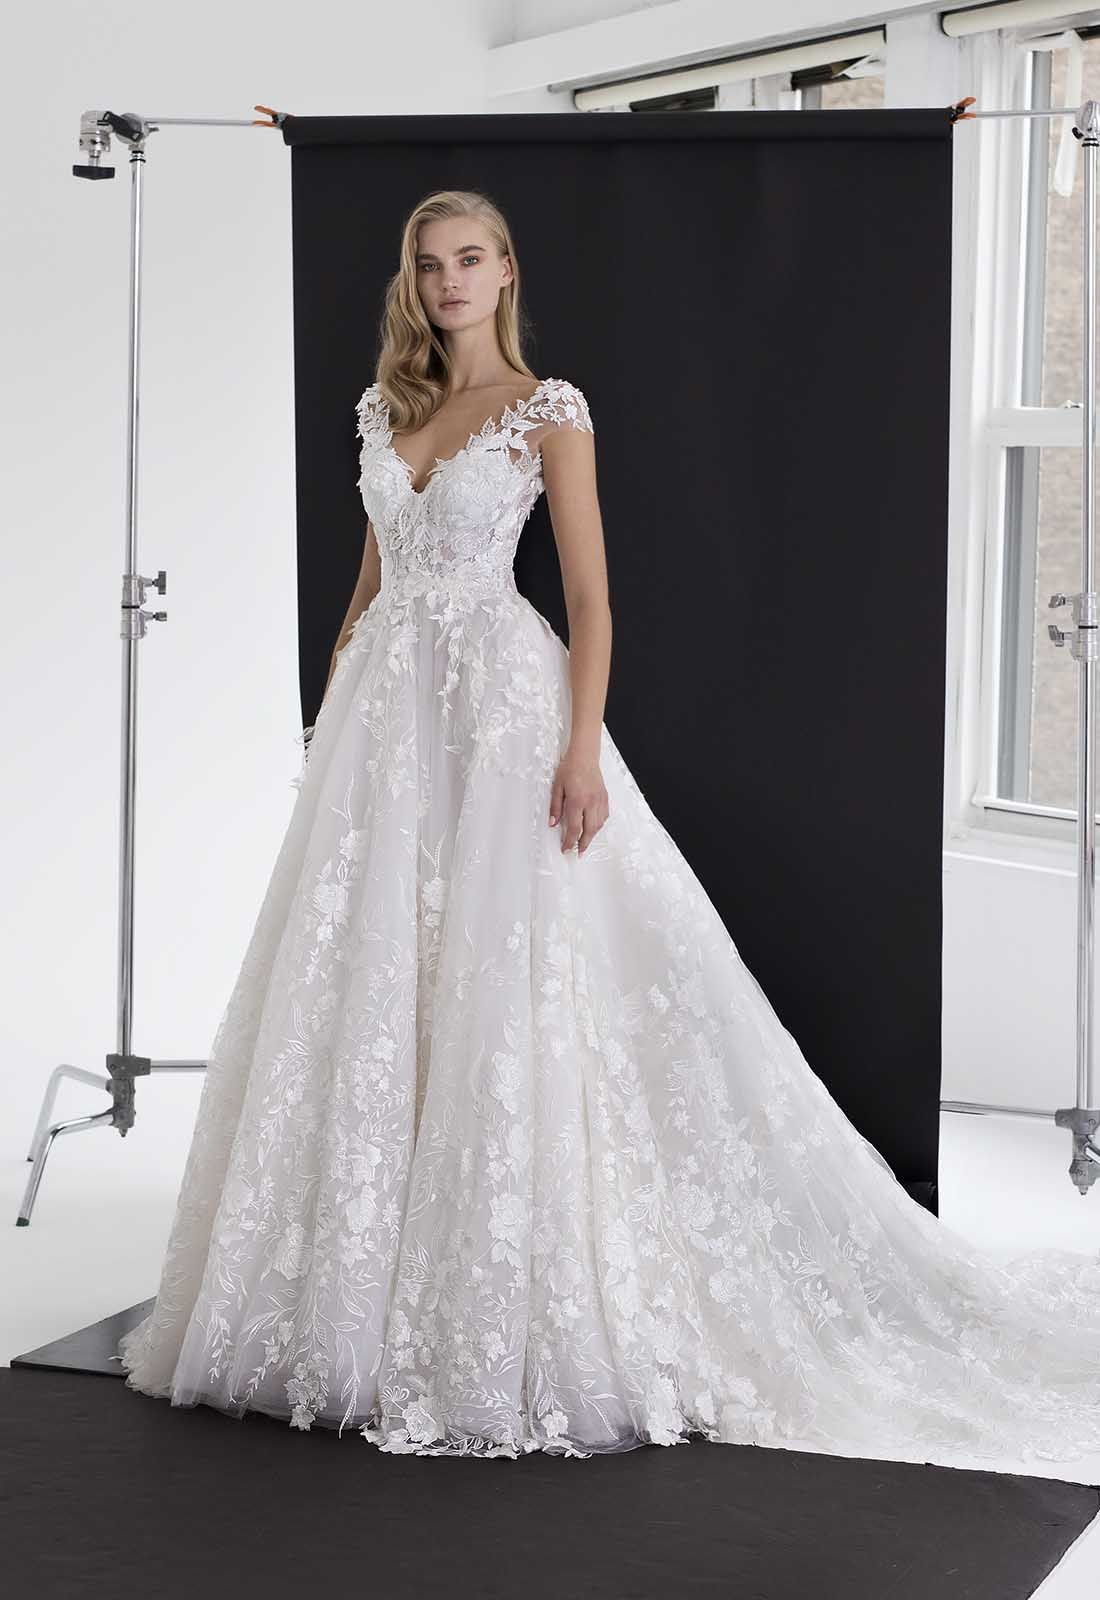 Pnina Tornai Ball Gown Wedding Dress With Floral Applique And Tulle Skirt Style Pnina Tornai Wedding Dress Ball Gown Wedding Dress Wedding Dresses Kleinfeld